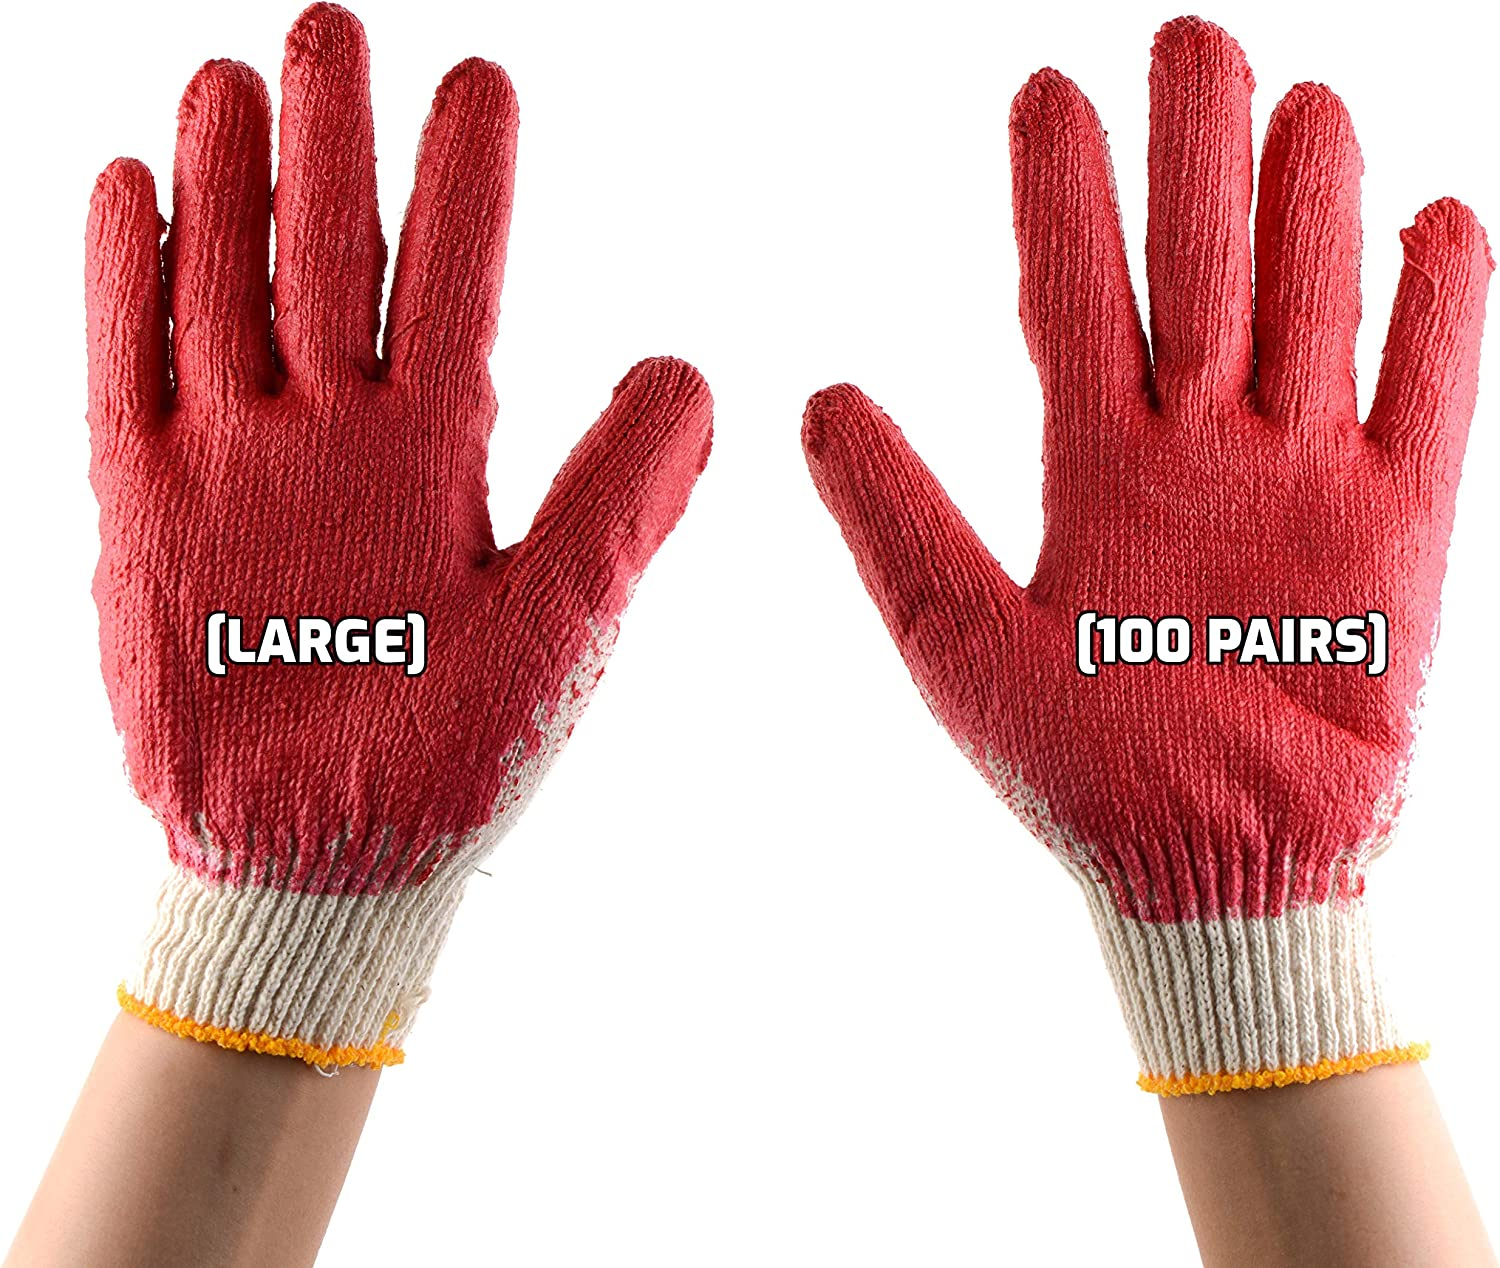 100 Pack Latex Dipped Nitrile Coated - Work Large Strin Max 40% OFF Gloves Special sale item